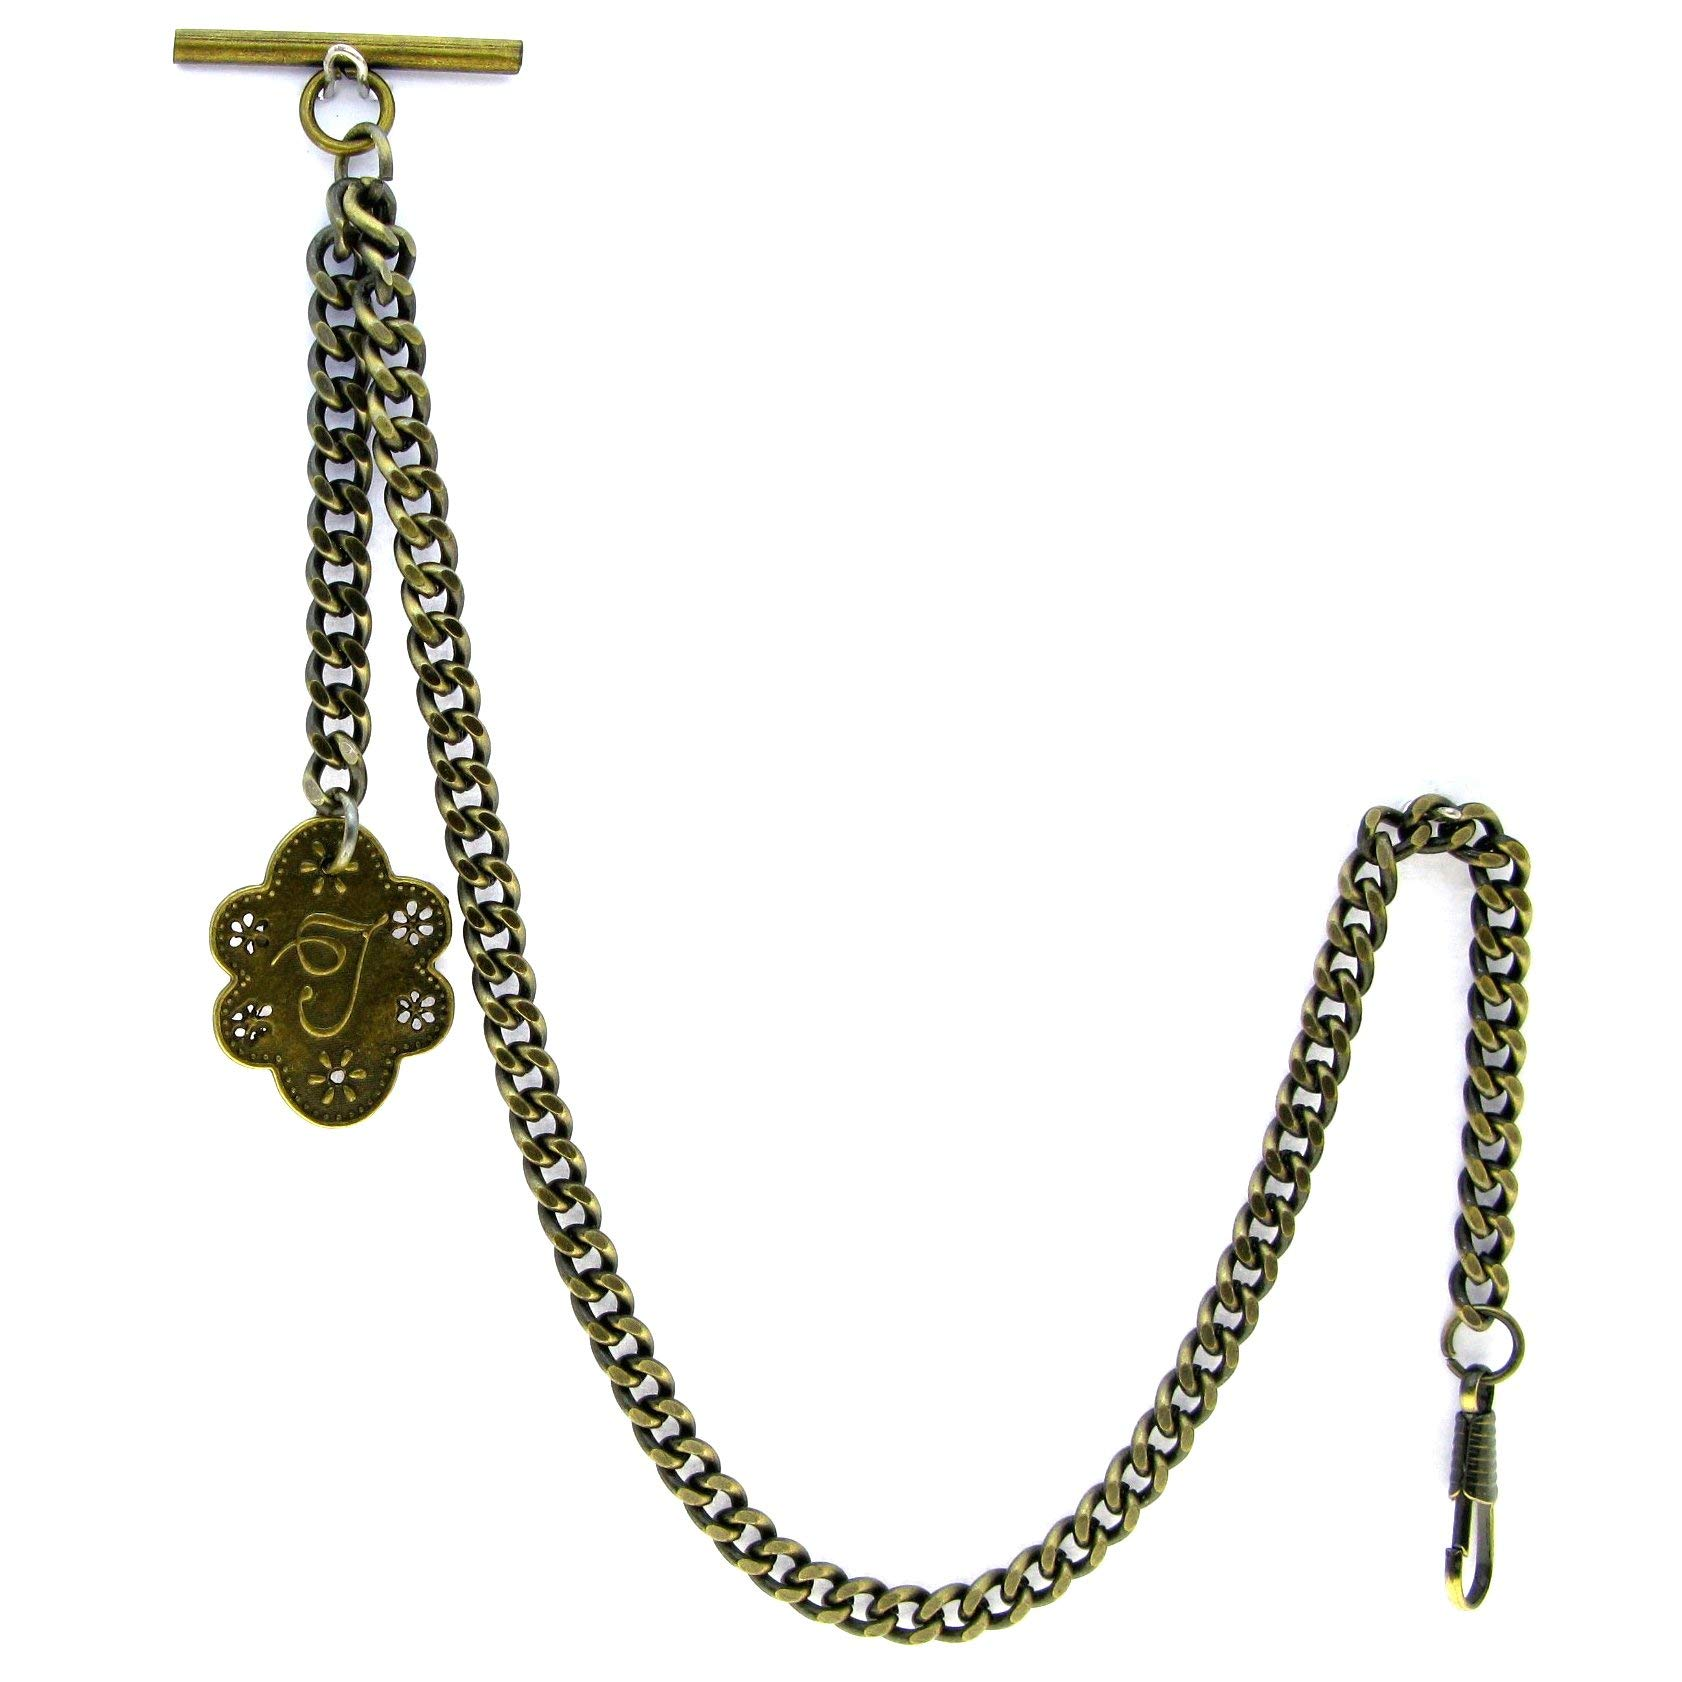 Albert Chain Pocket Watch Curb Link Chain Antique Brass Color + Alphabet T Initial Letter Fob T Bar AC83